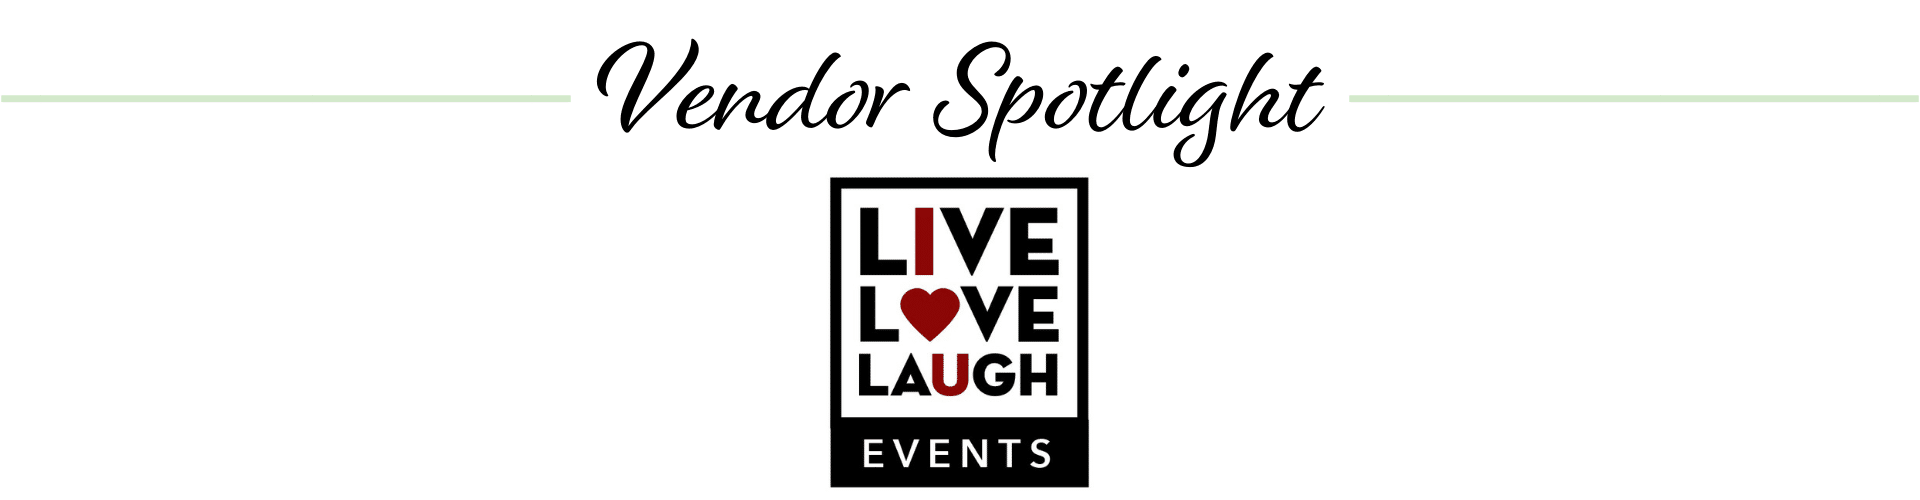 Live Love Laugh Events logo